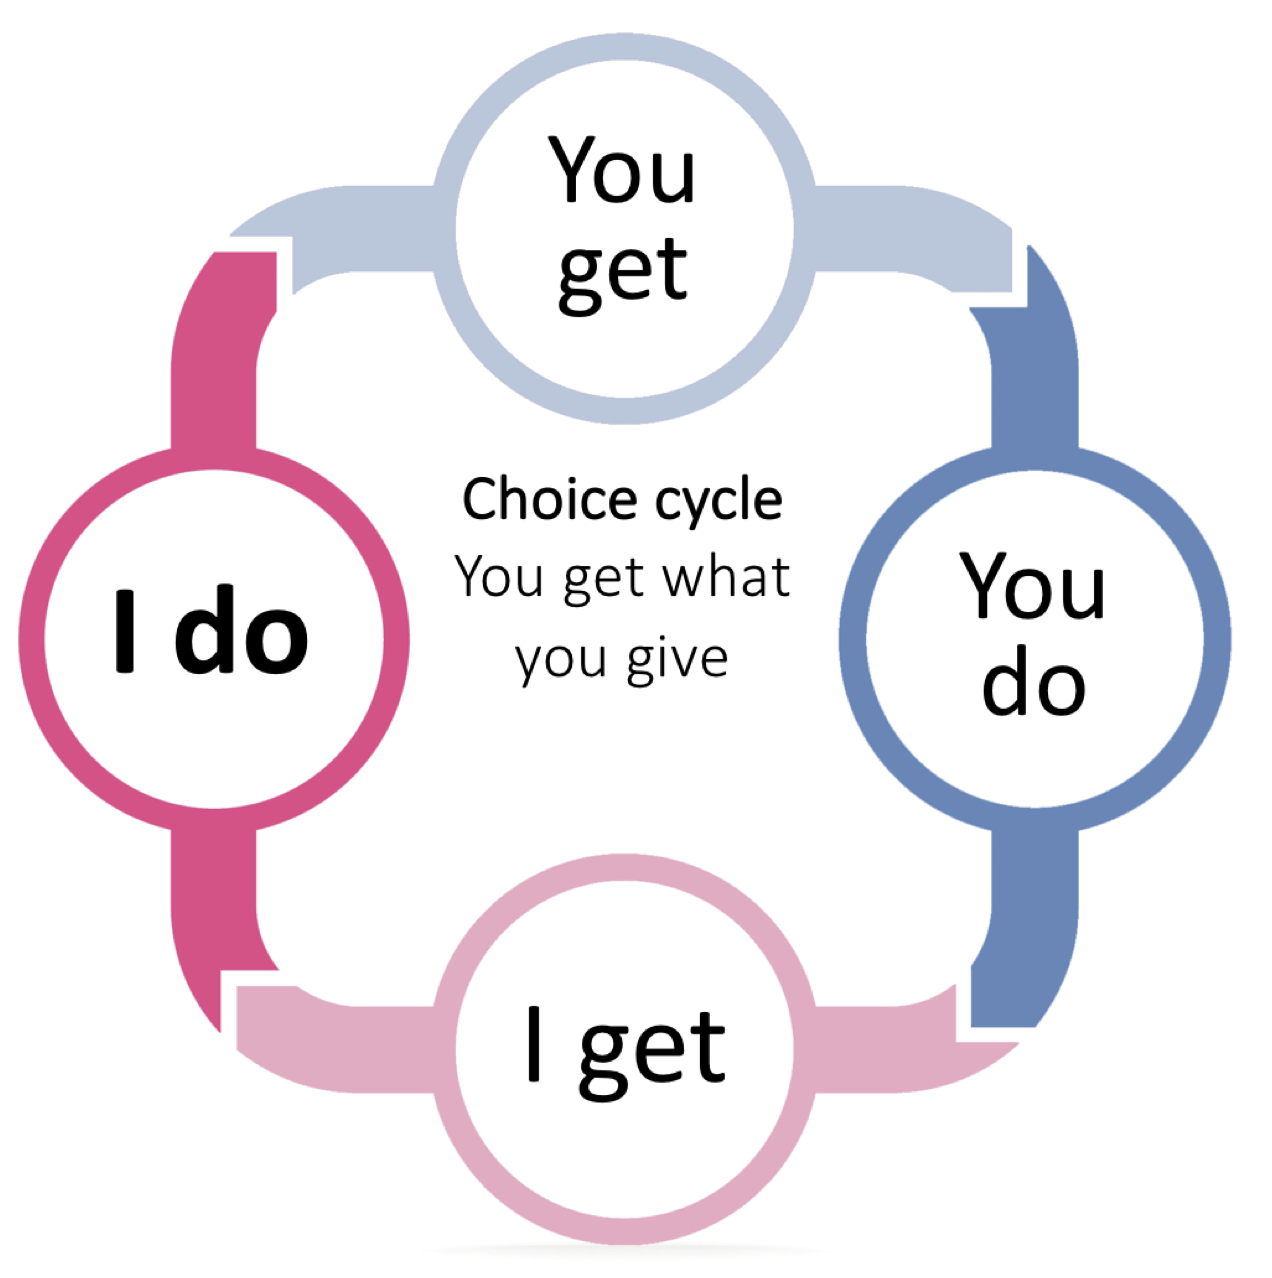 Choice cycle